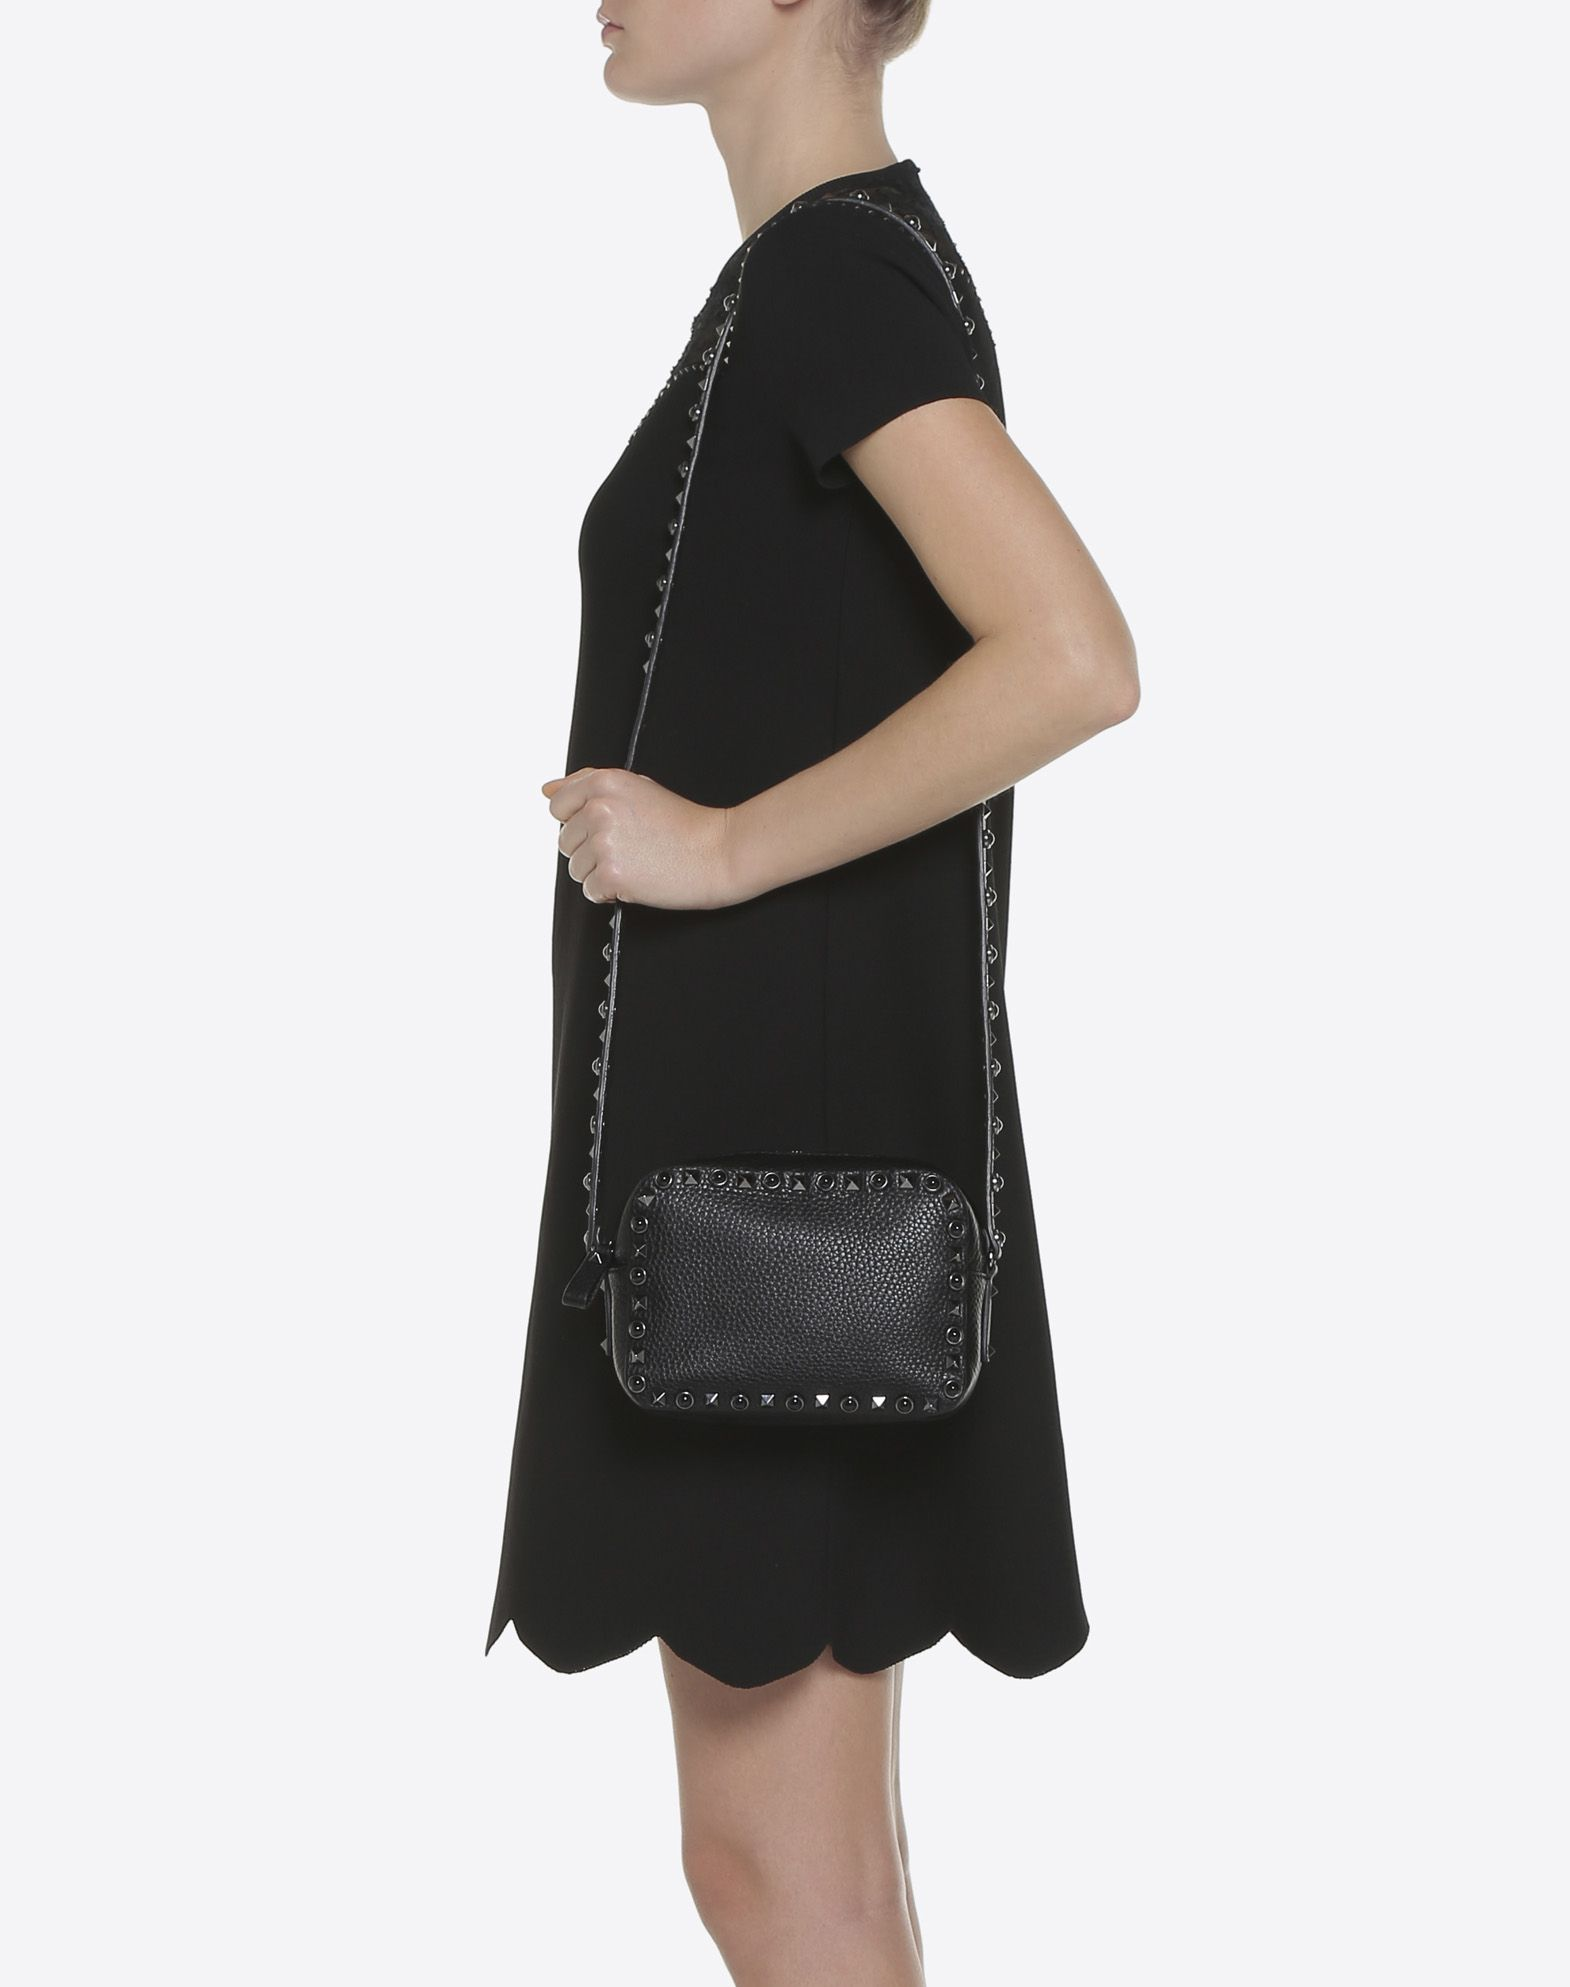 VALENTINO GARAVANI Rockstud Rolling Noir Cross Body Bag CROSS BODY BAG D a